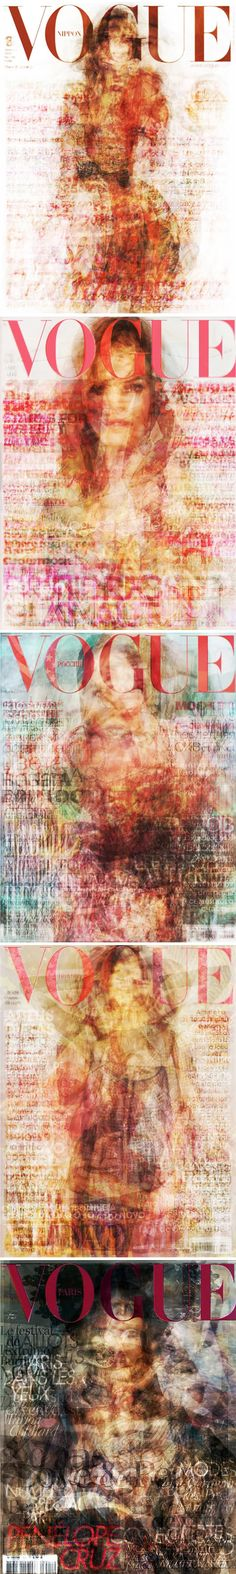 Vogue on Vogue on Vogue - made by layering all twelve of the 2010 covers on top of each other.